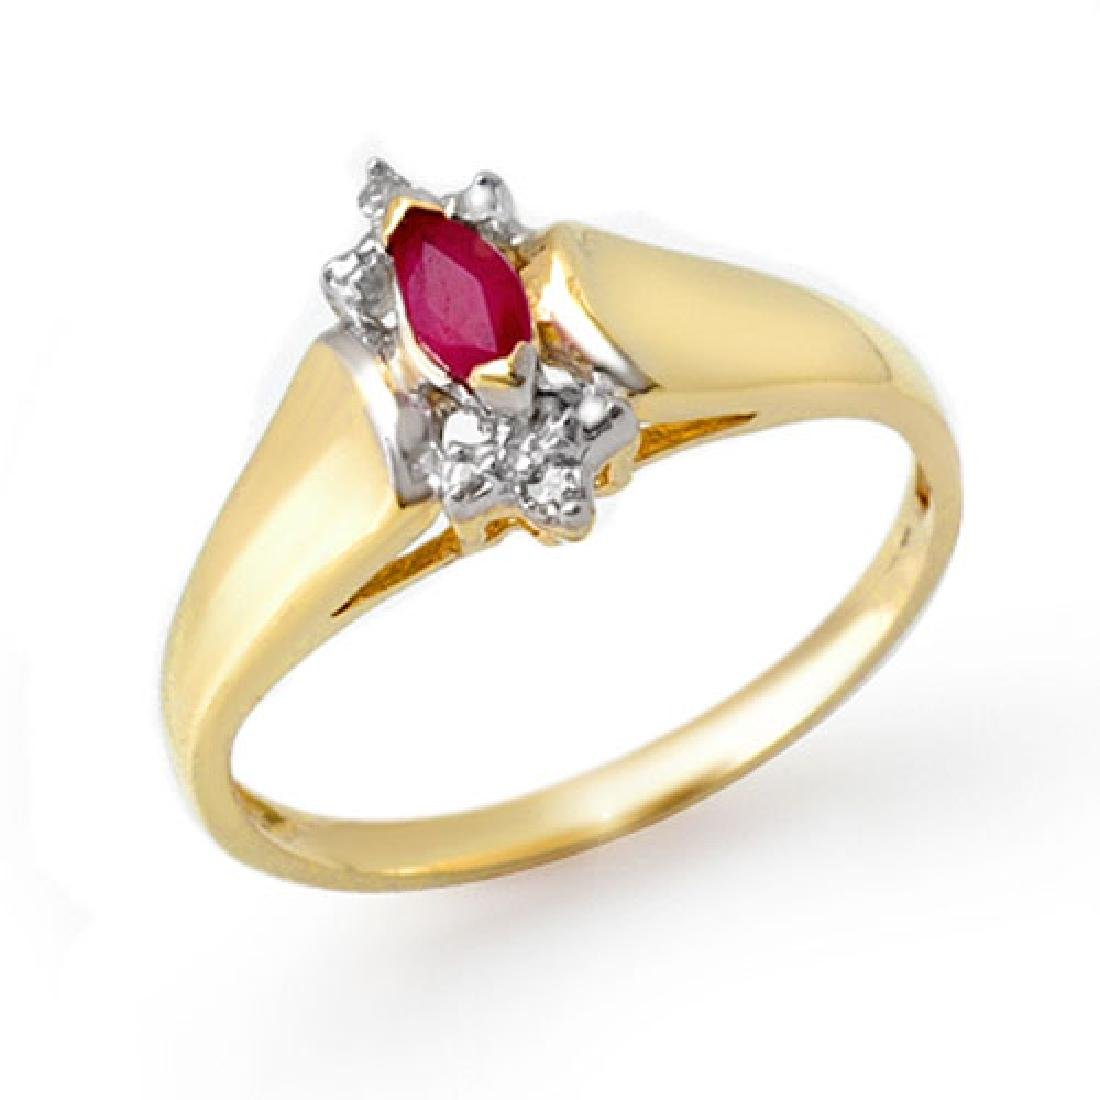 0.22 CTW Ruby & Diamond Ring 10K Yellow Gold